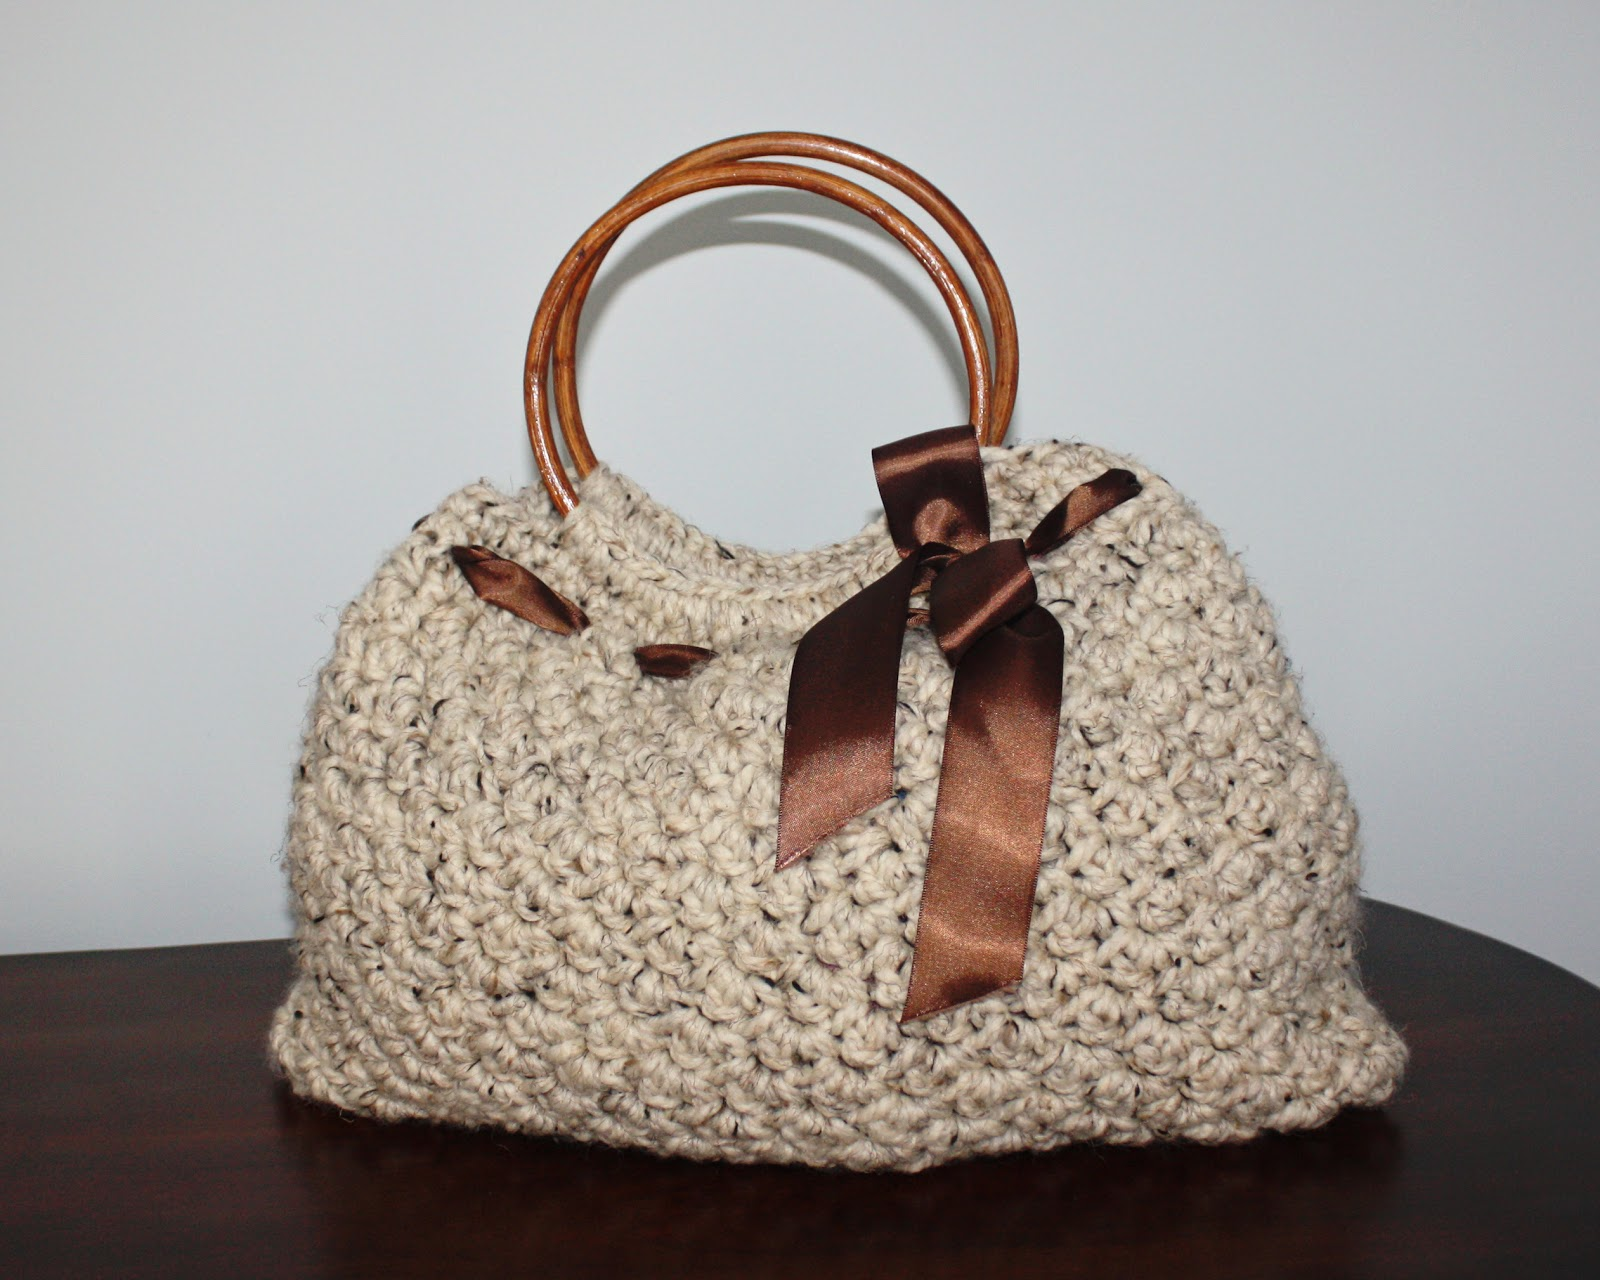 Crochet Purse : Pretty Darn Adorable Crochet: Crochet Handbag/Purse